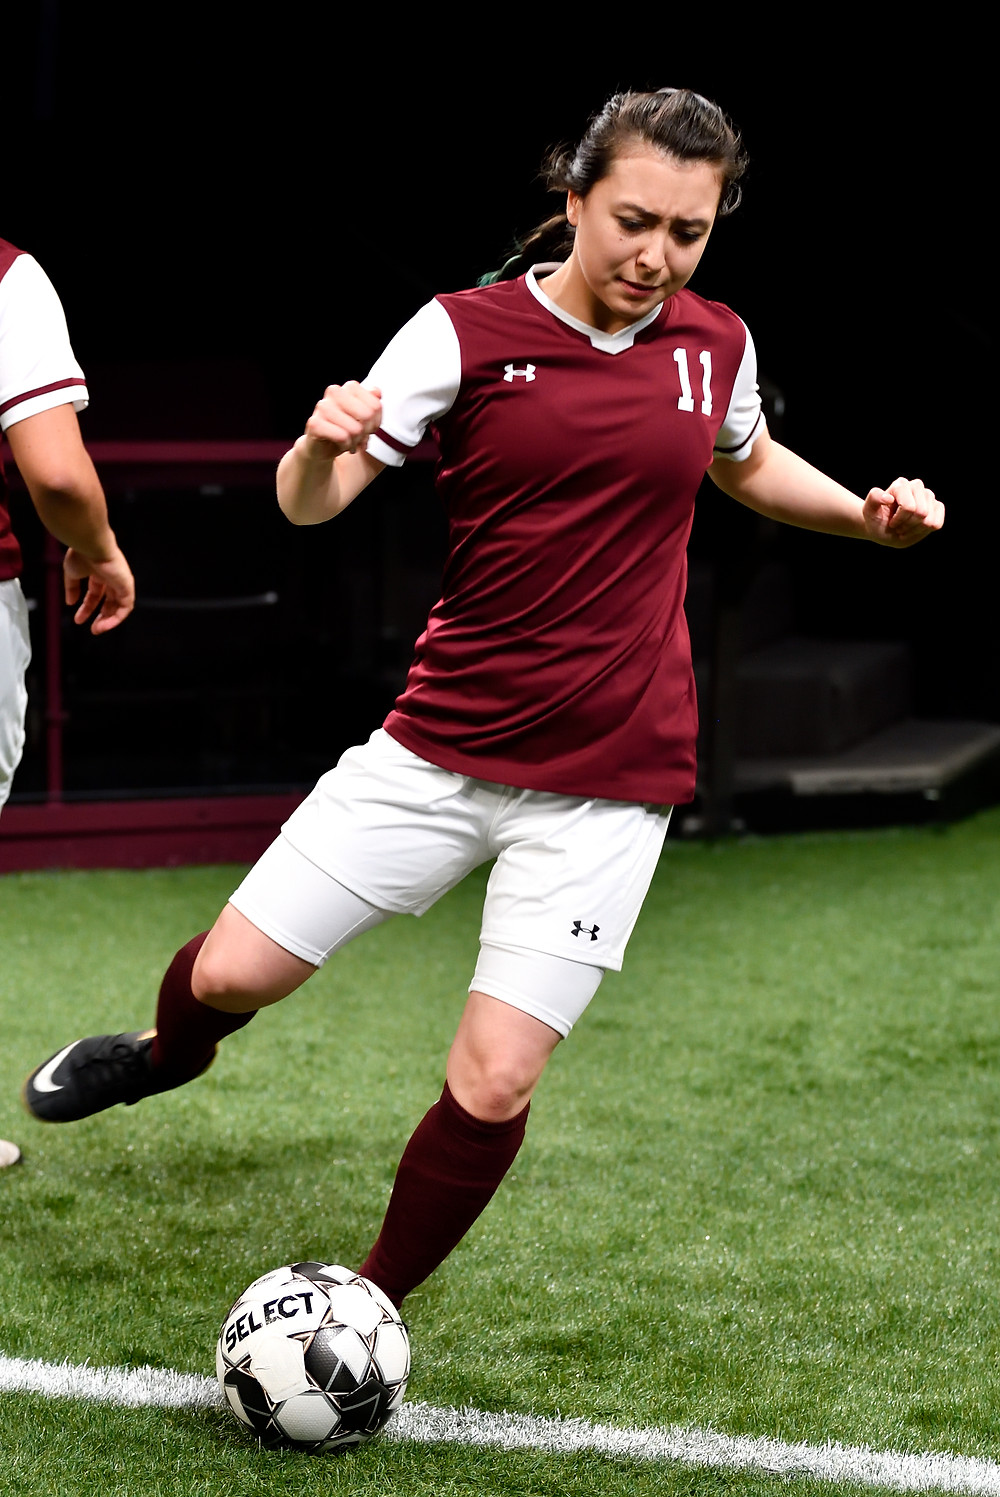 """Alex Lin as #11 in Actors Theatre of Louisville's production of Sarah DeLappe's """"The Wolves"""" kicks a soccer ball. Photo by Jonathan Roberts."""